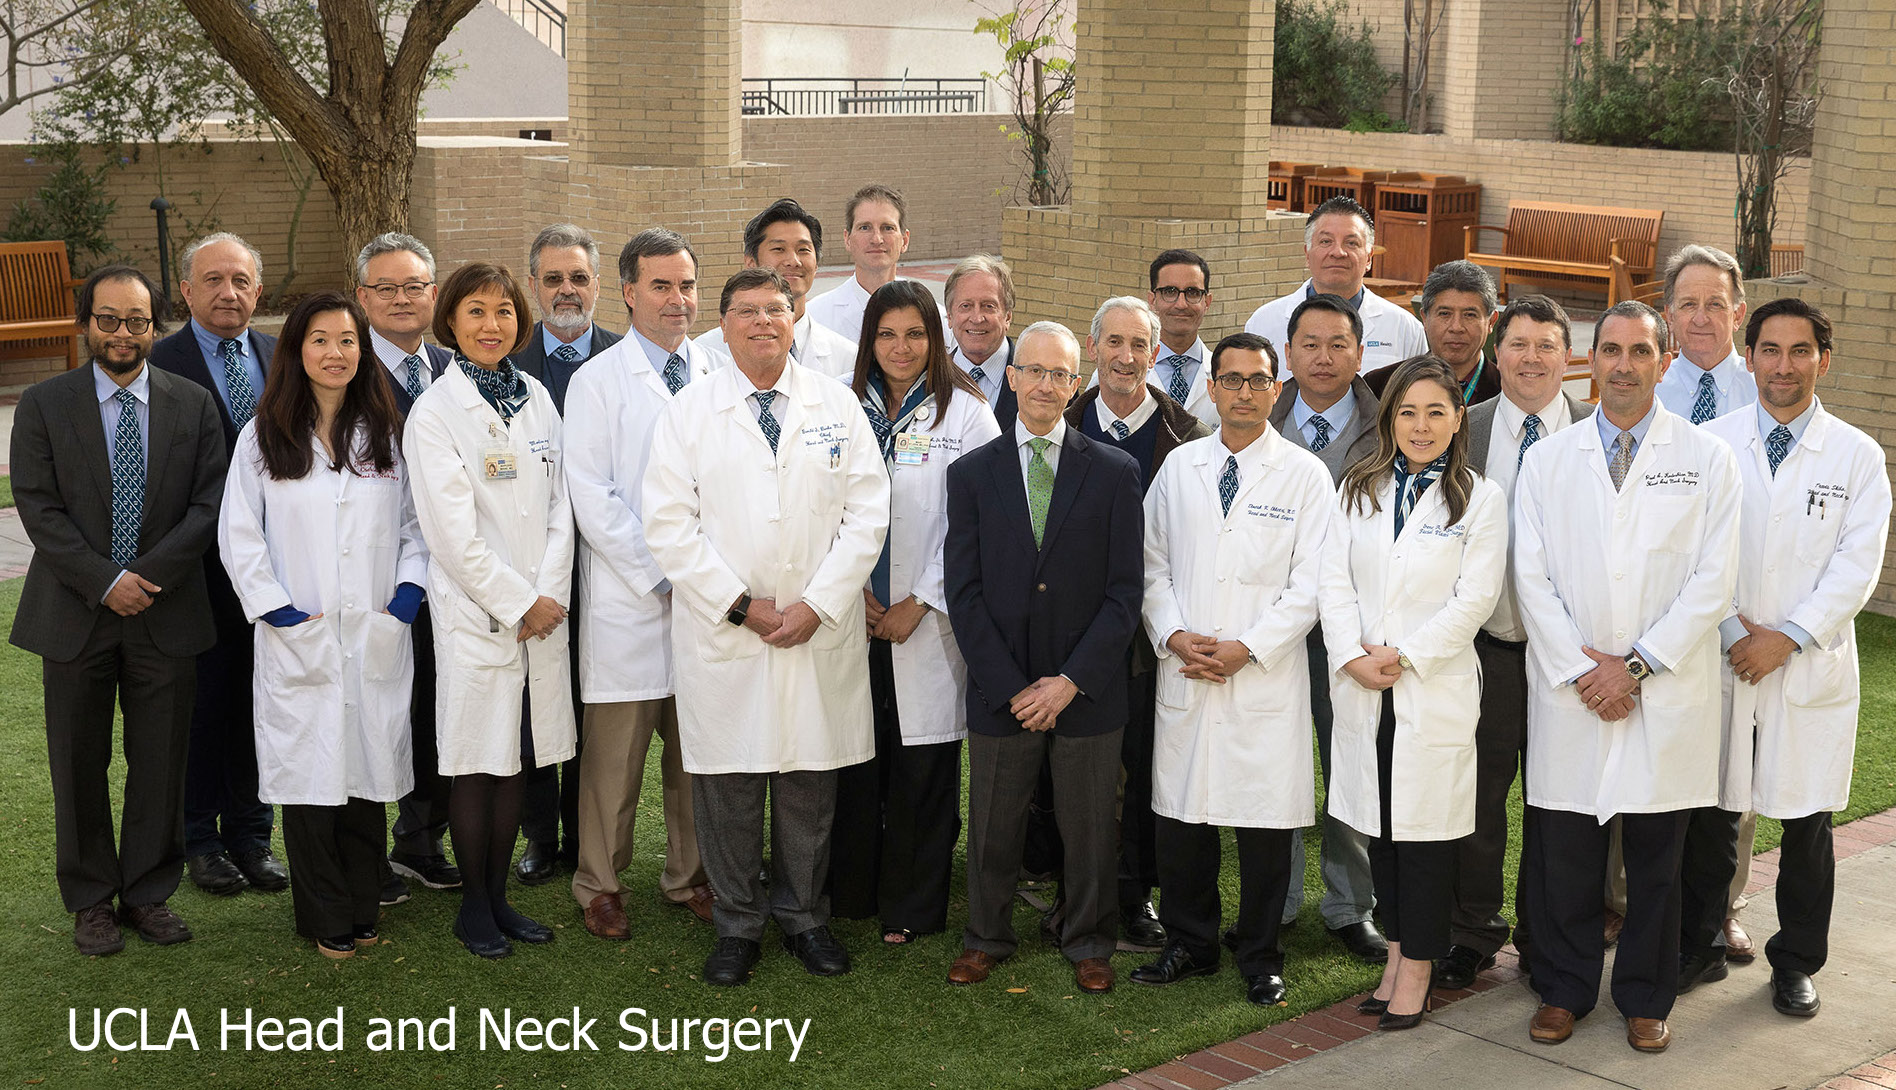 UCLA Head and Neck Surgery, Los Angeles, CA